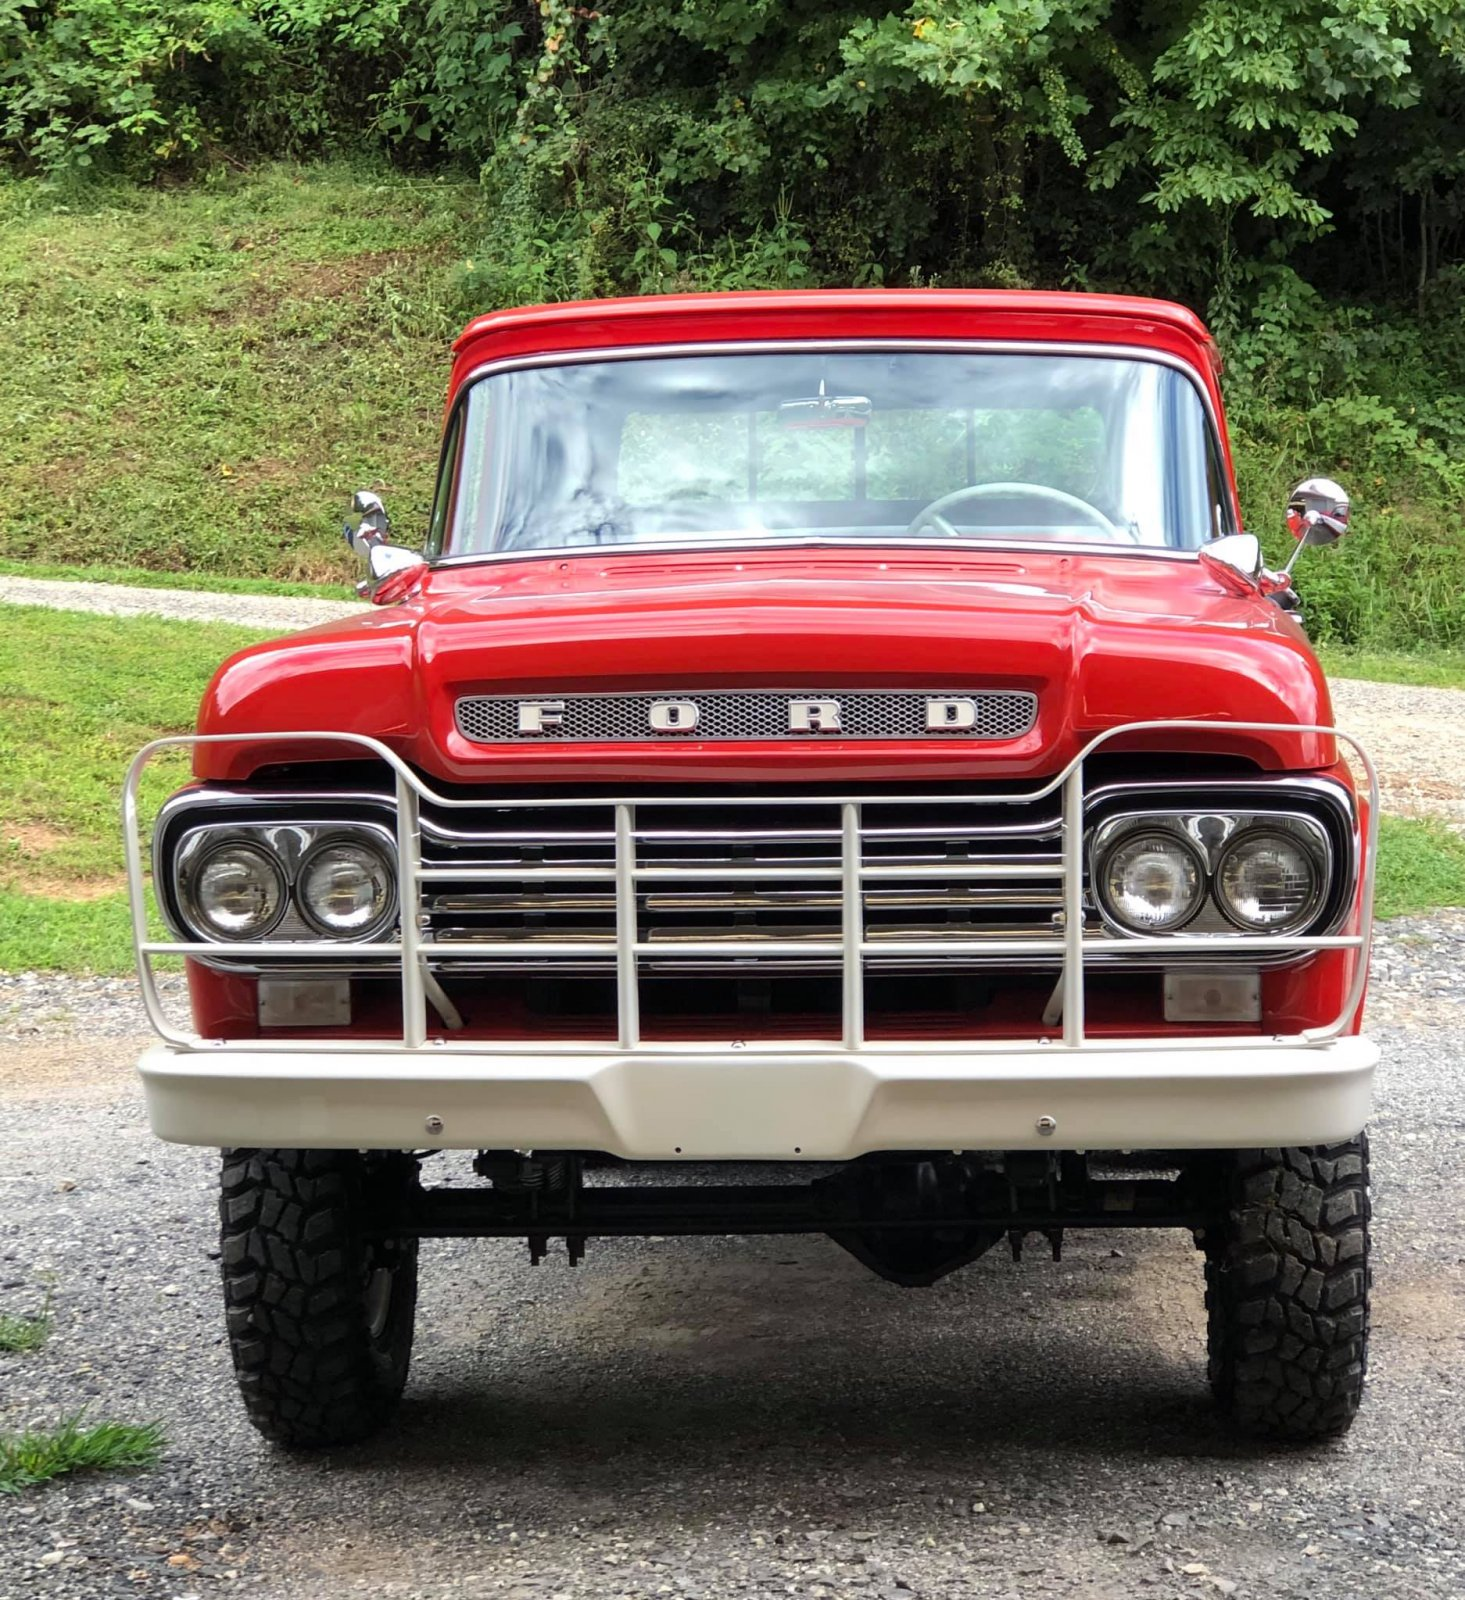 1959 Ford F100 4x4 Built From The Ground Up 11.jpg